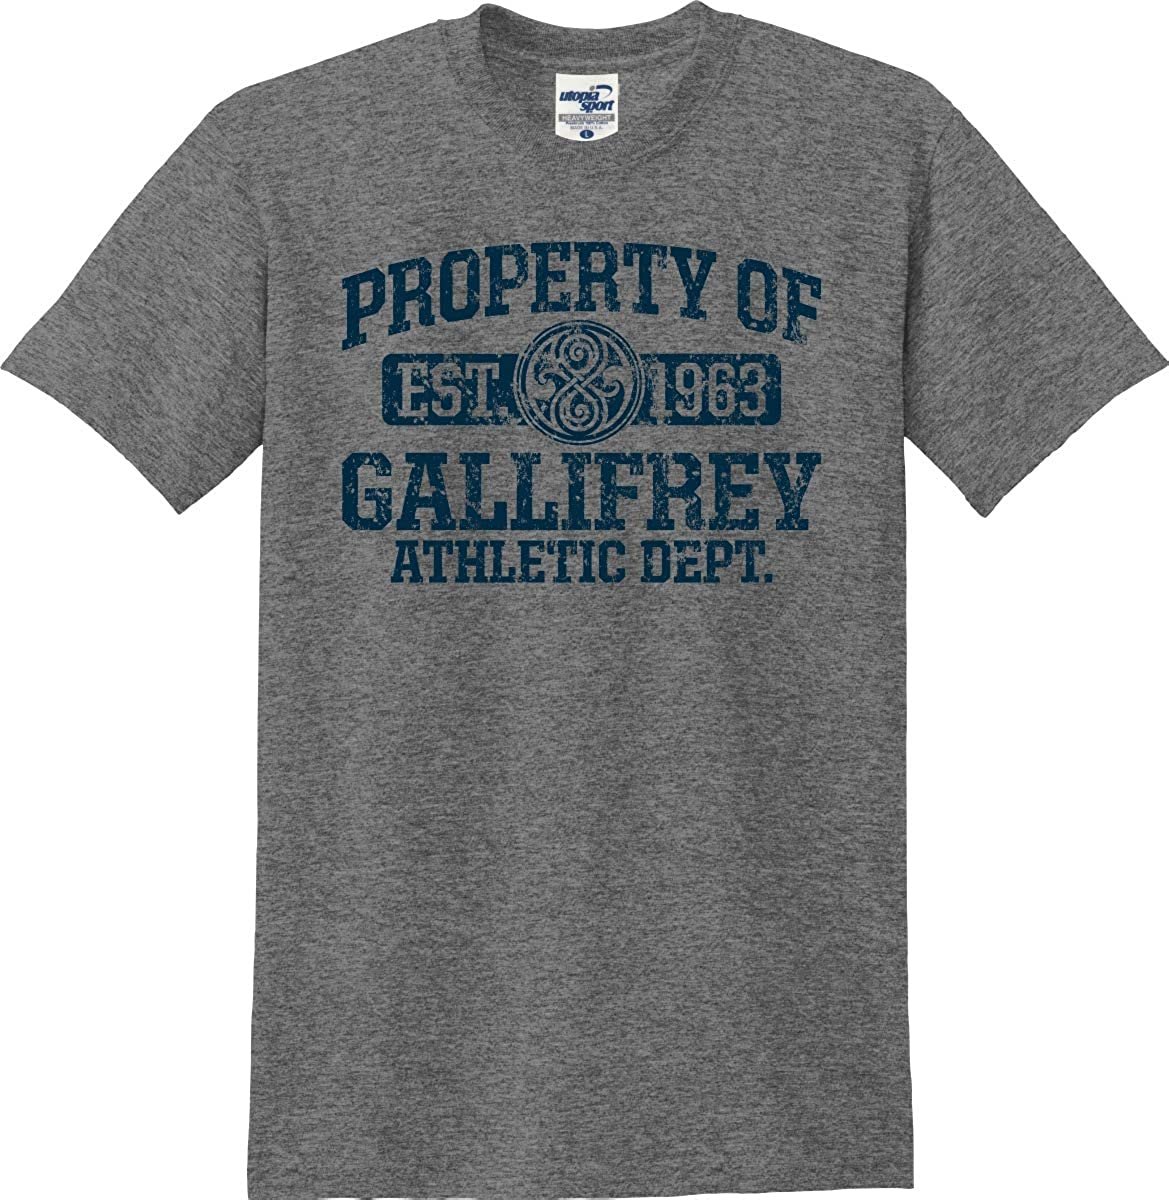 Utopia Sport Property of Gallifrey Athletic Department T-Shirt (S-5X)